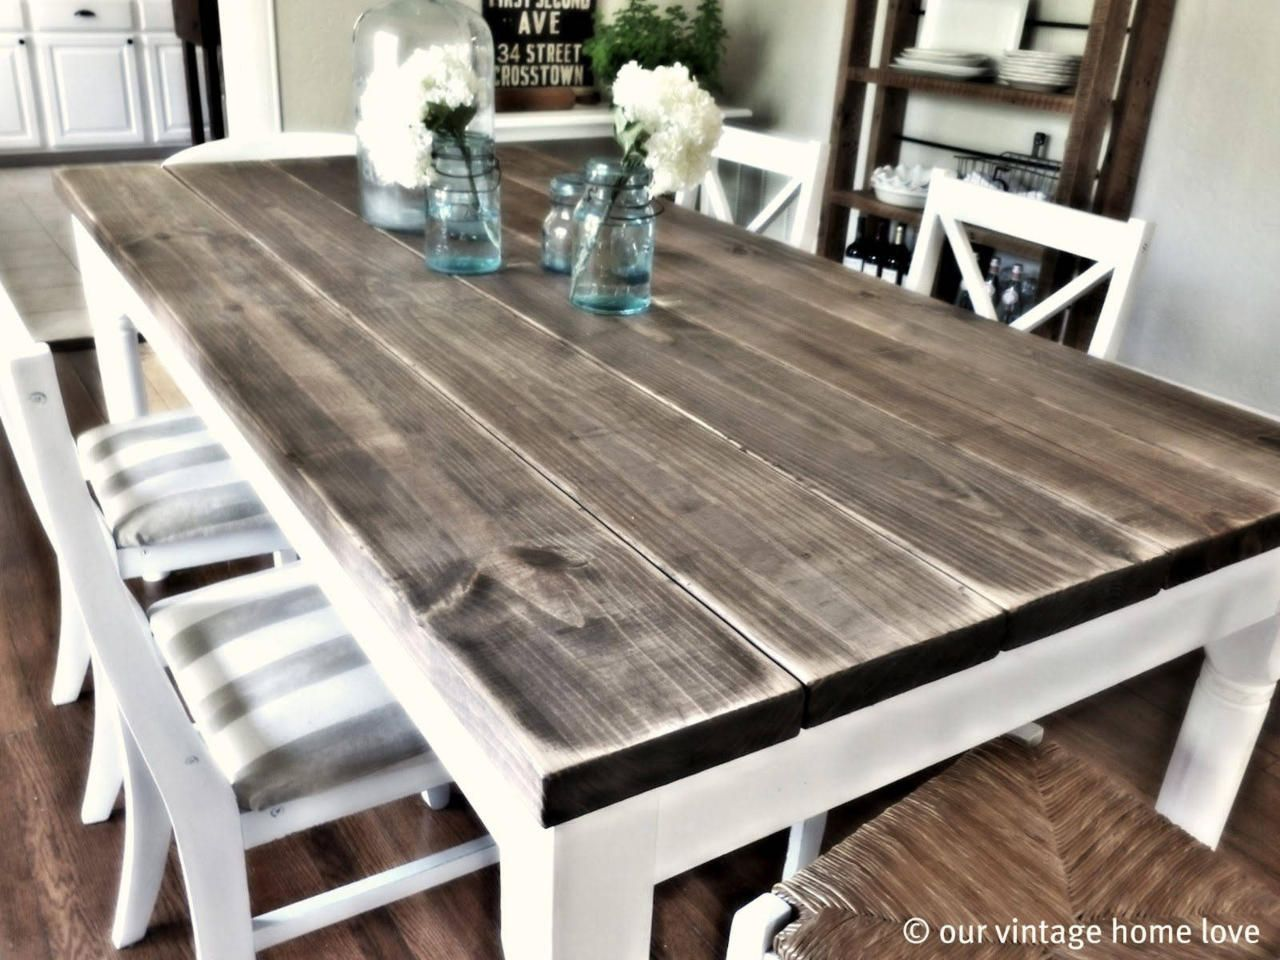 farm style kitchen table farm style kitchen table farmhouse kitchen tables and chairs distressed farmhouse table